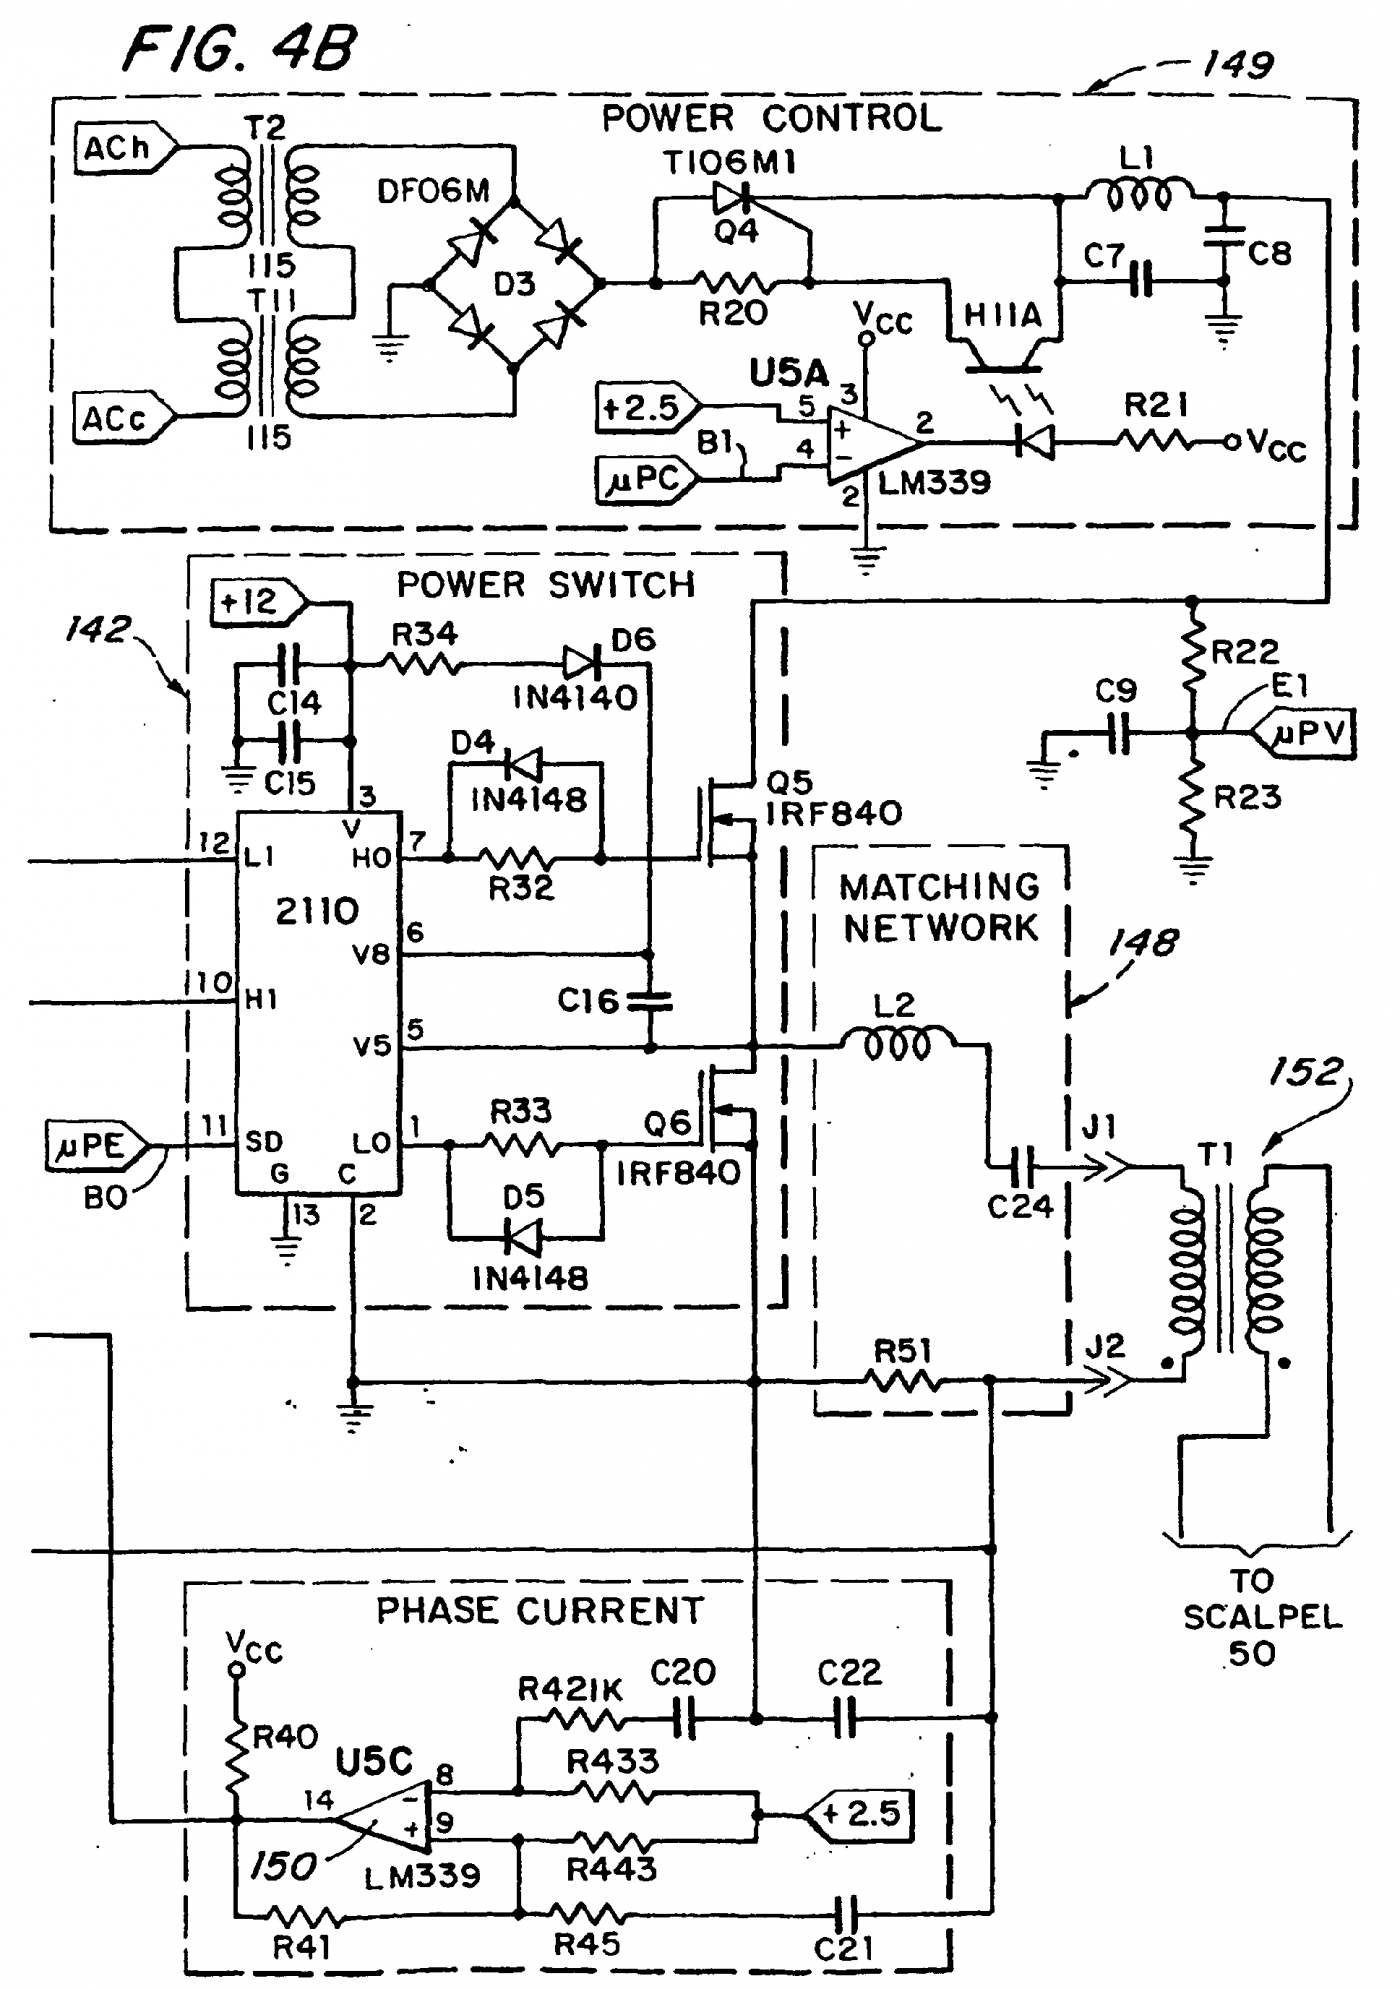 L120 Wiring Diagram | Wiring Schematic Diagram on